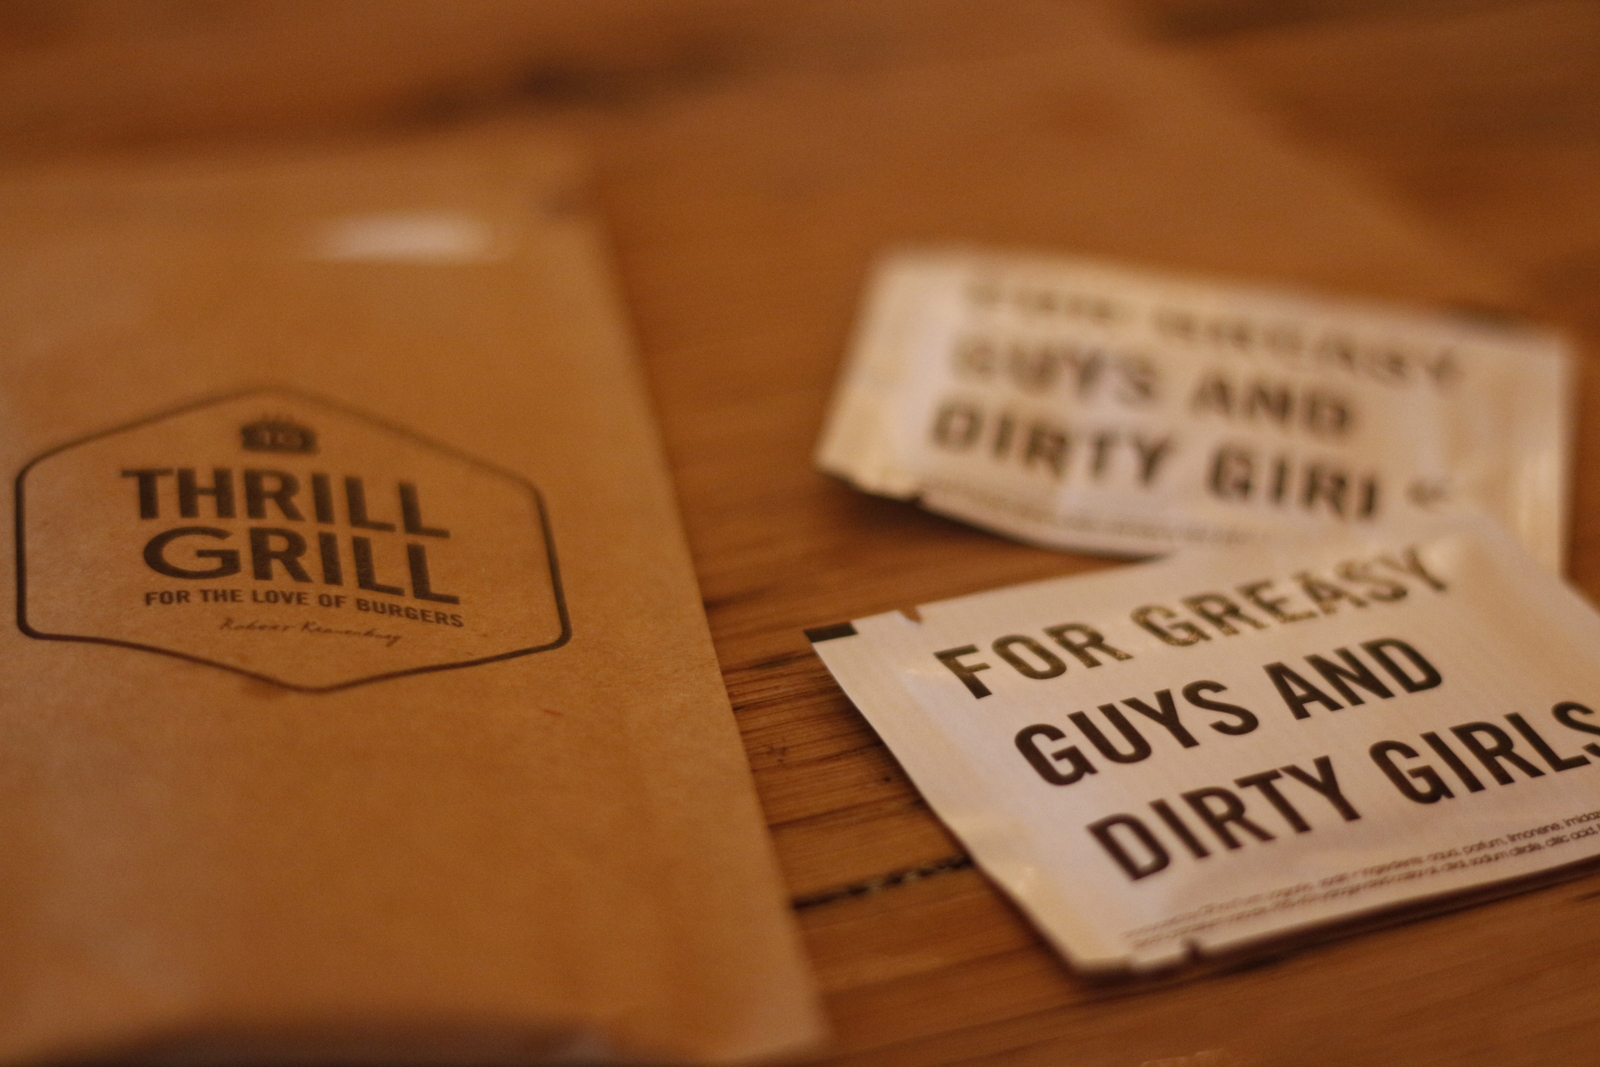 Located near the Albert Cuypmarkt and in Oud West, Thrill Grill is a good spot to sit down and enjoy a burger and fries before hitting the bars.